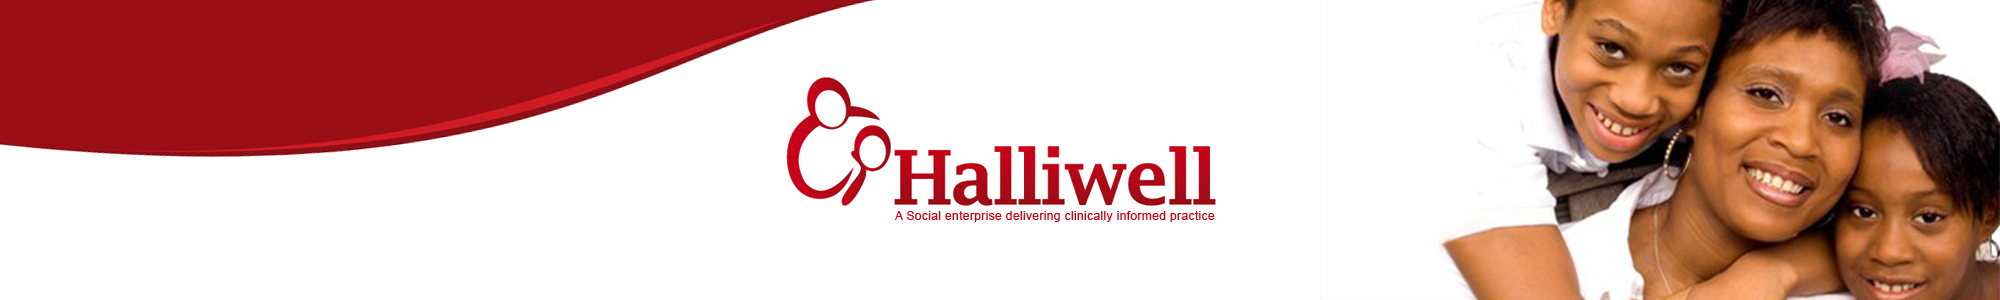 Halliwell Homes Ltd*